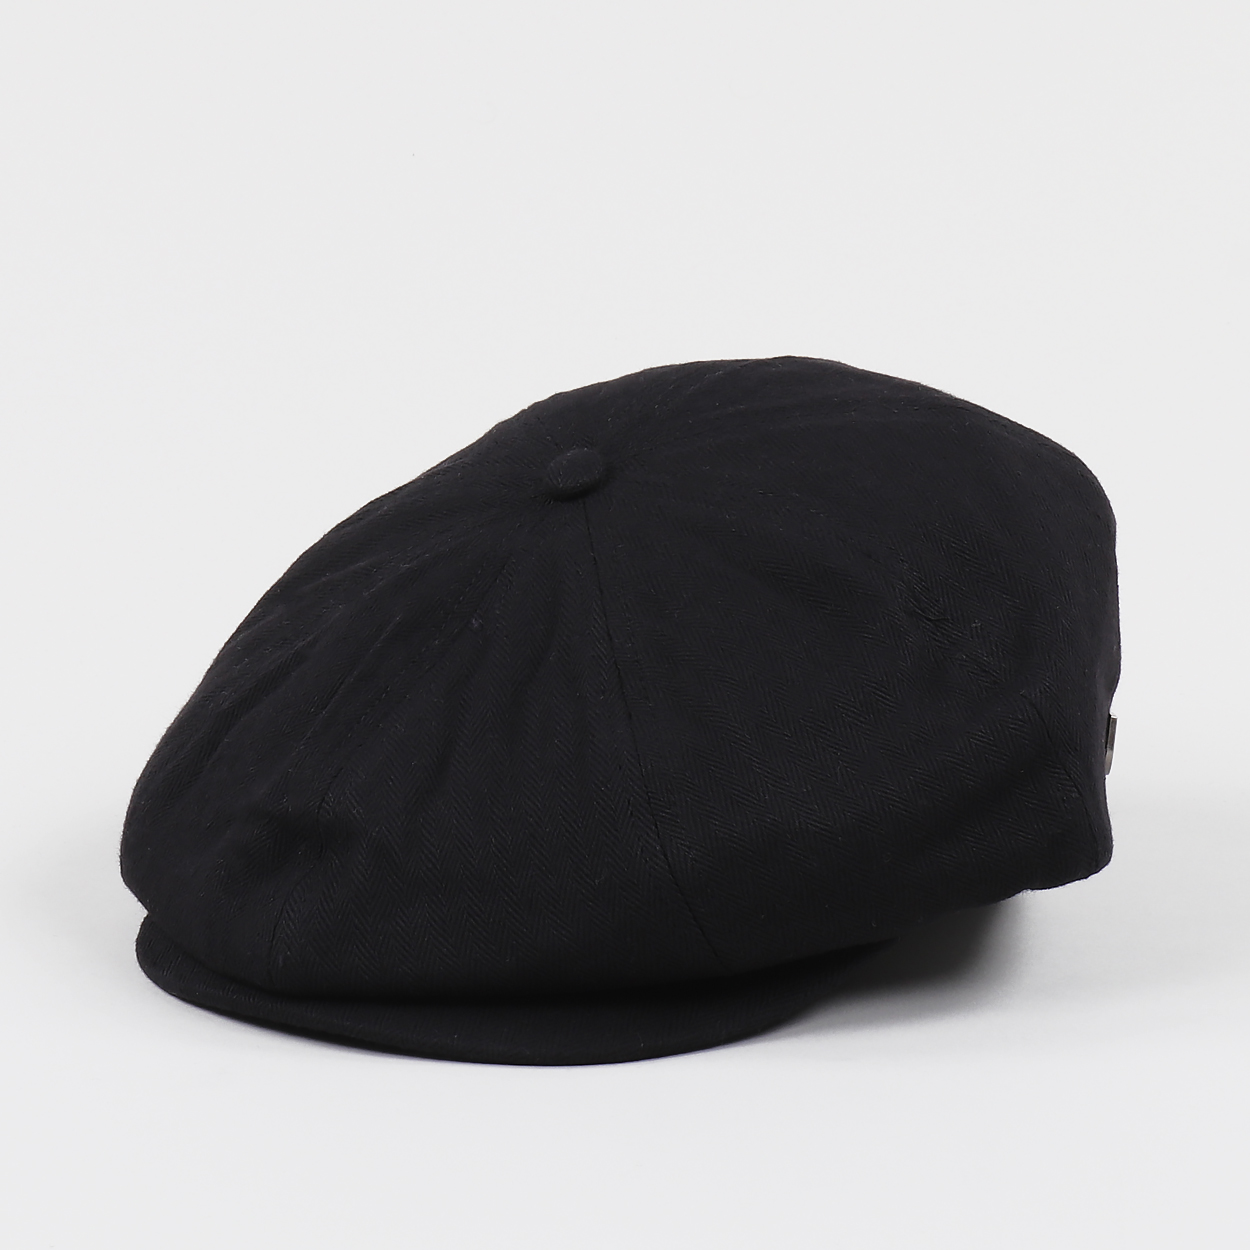 e40d3338 Brixton Brood Cotton Twill Snap Flat Cap Headwear Black £26.25